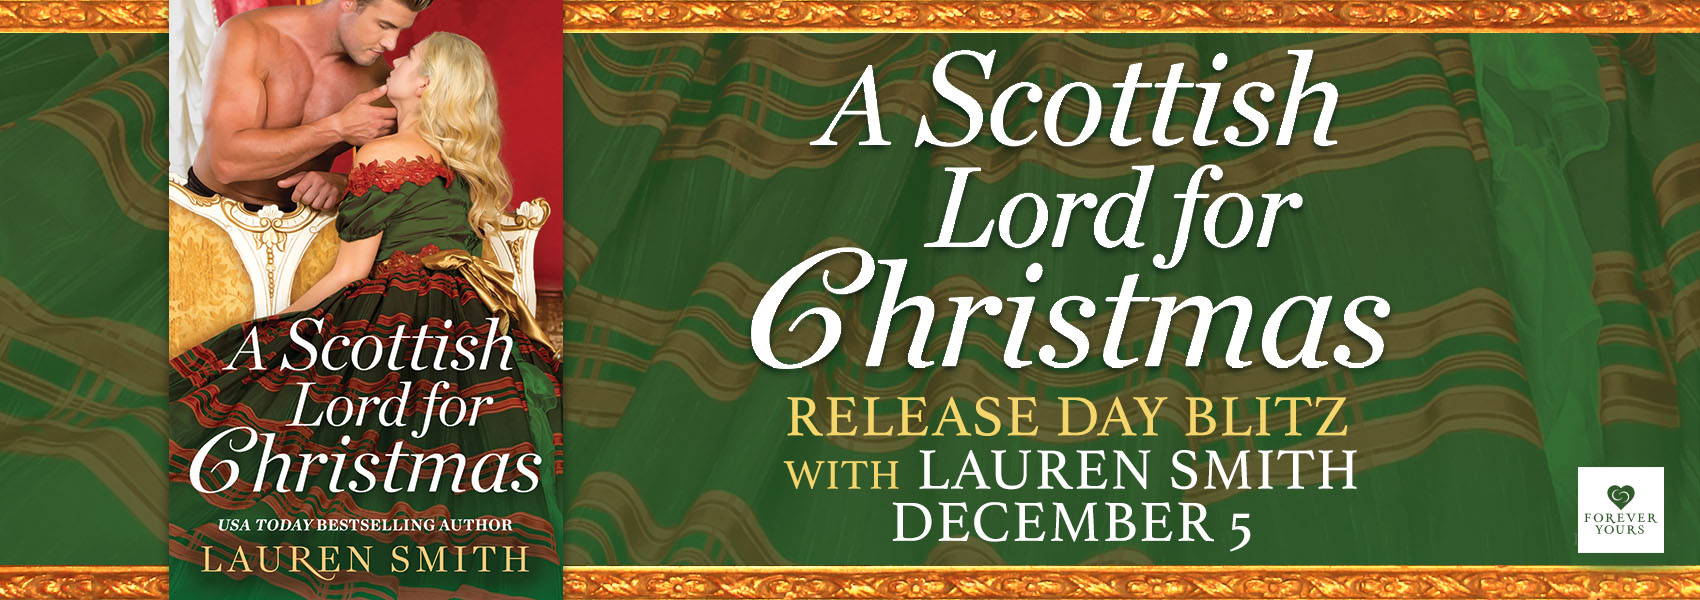 A Scottish Lord for Christmas by Lauren Smith